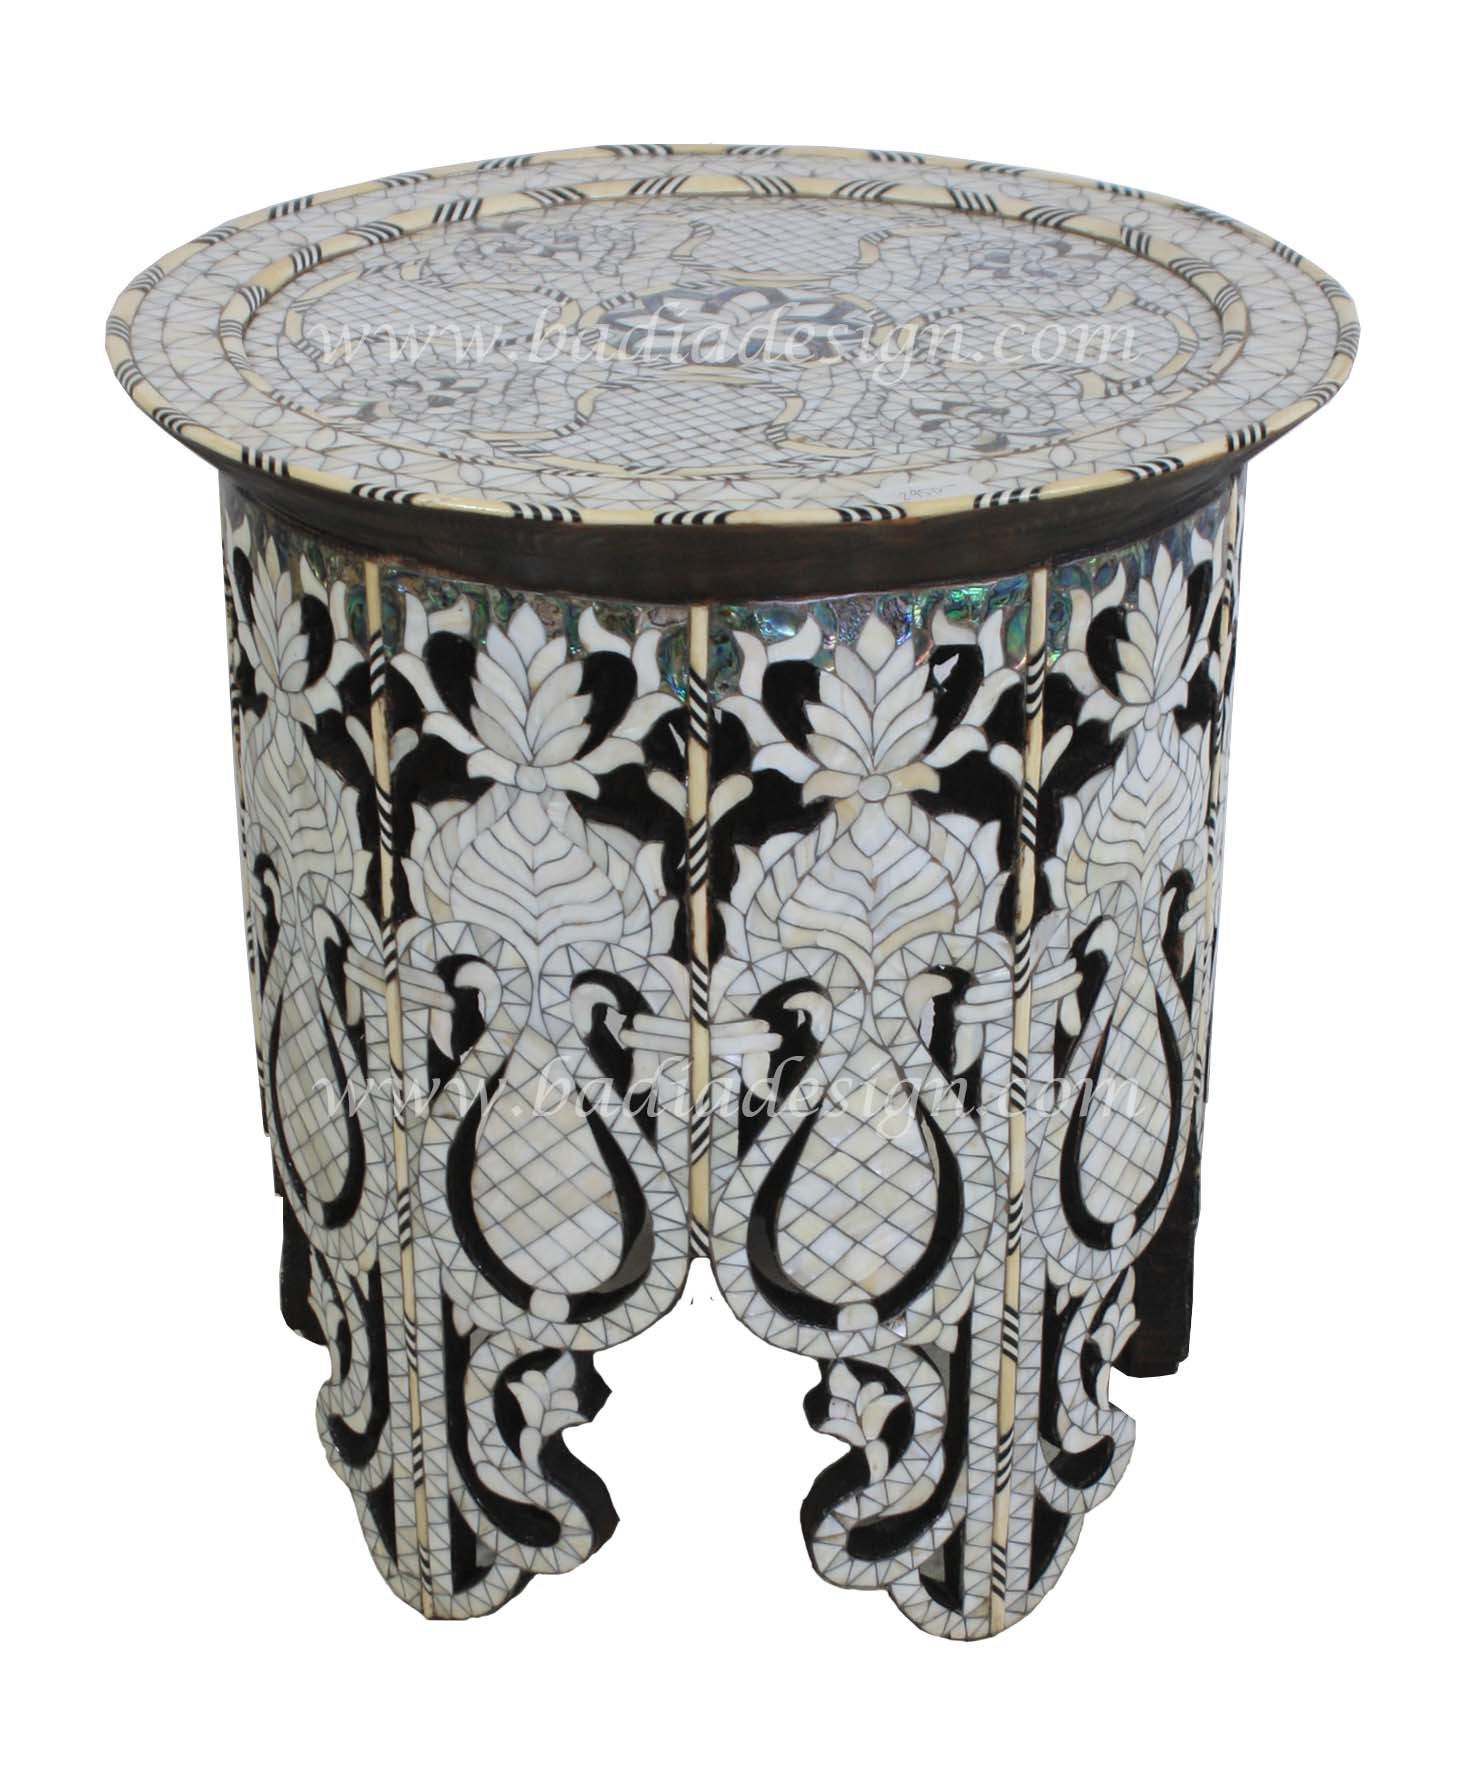 moroccan-wedding-furniture-mop-st059-1.jpg